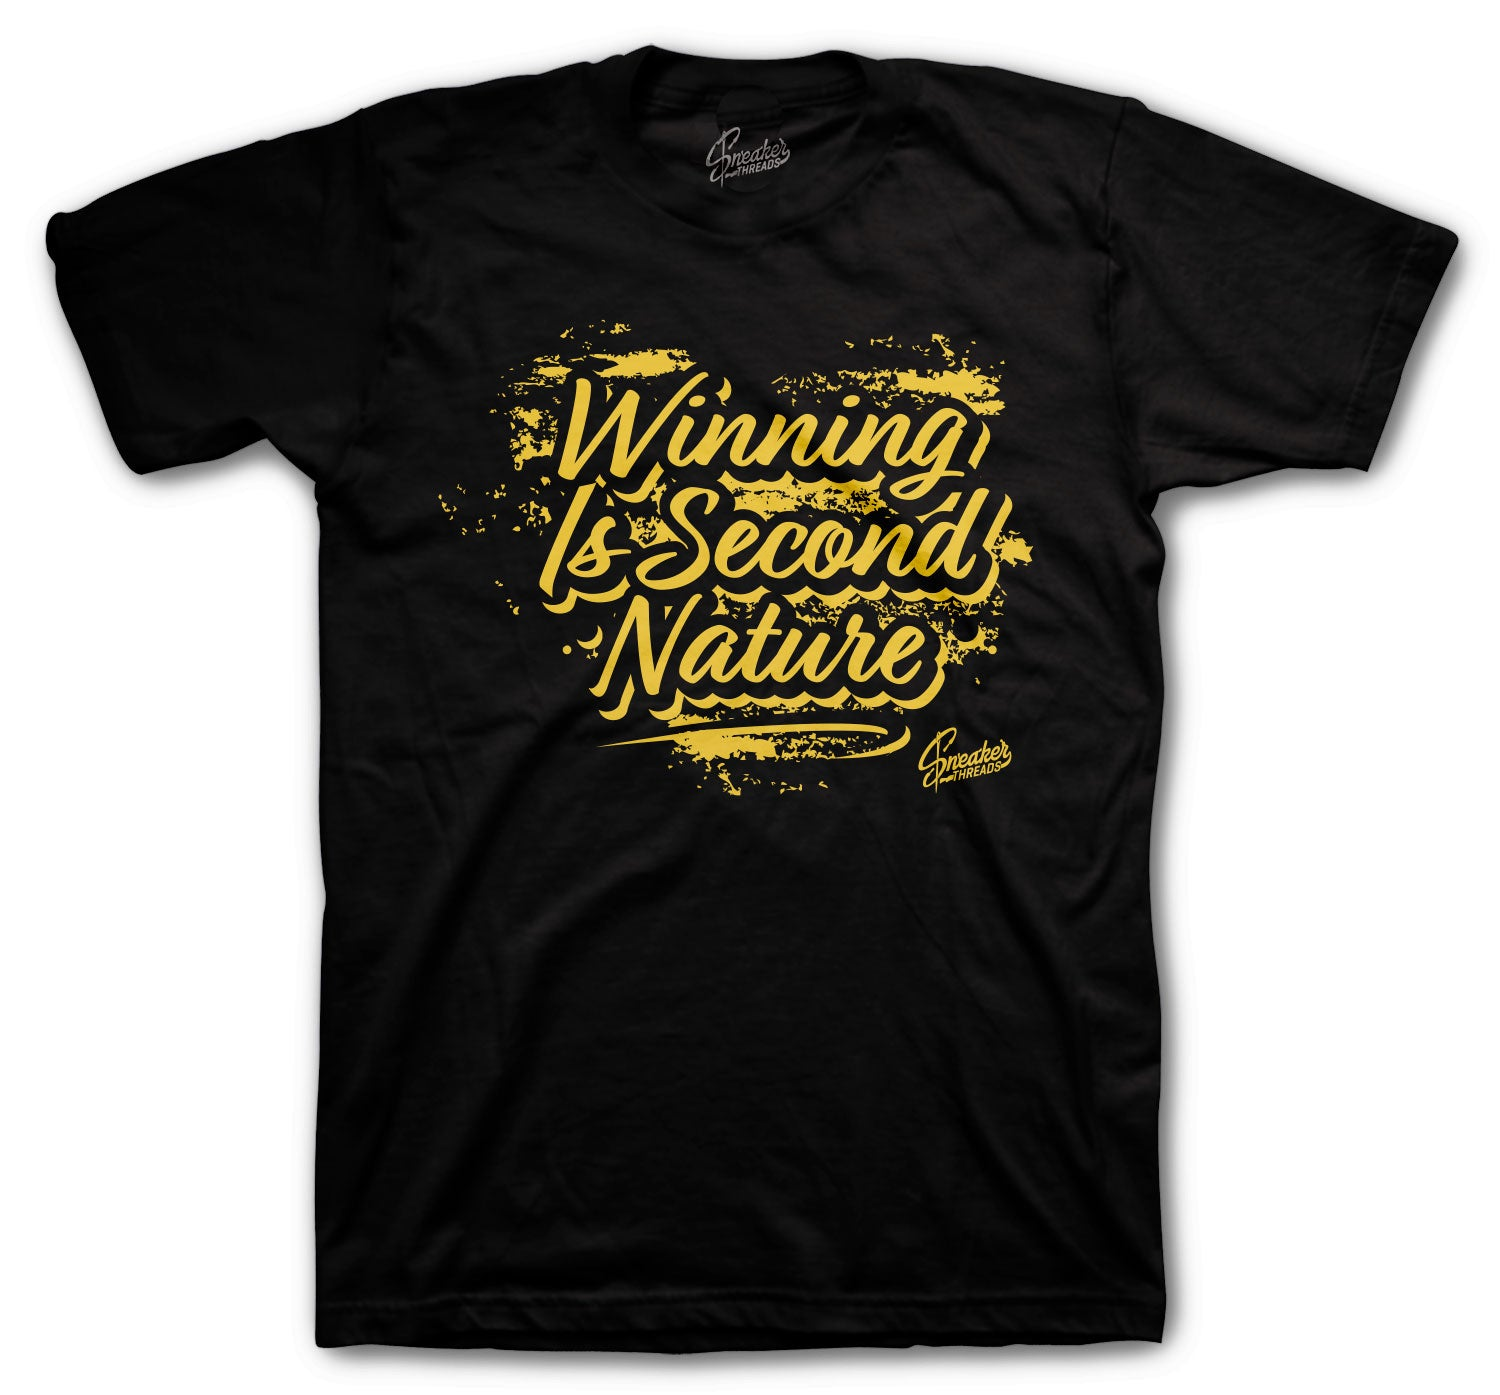 Jordan 1 Black Gold Shirt - Second Nature - Black